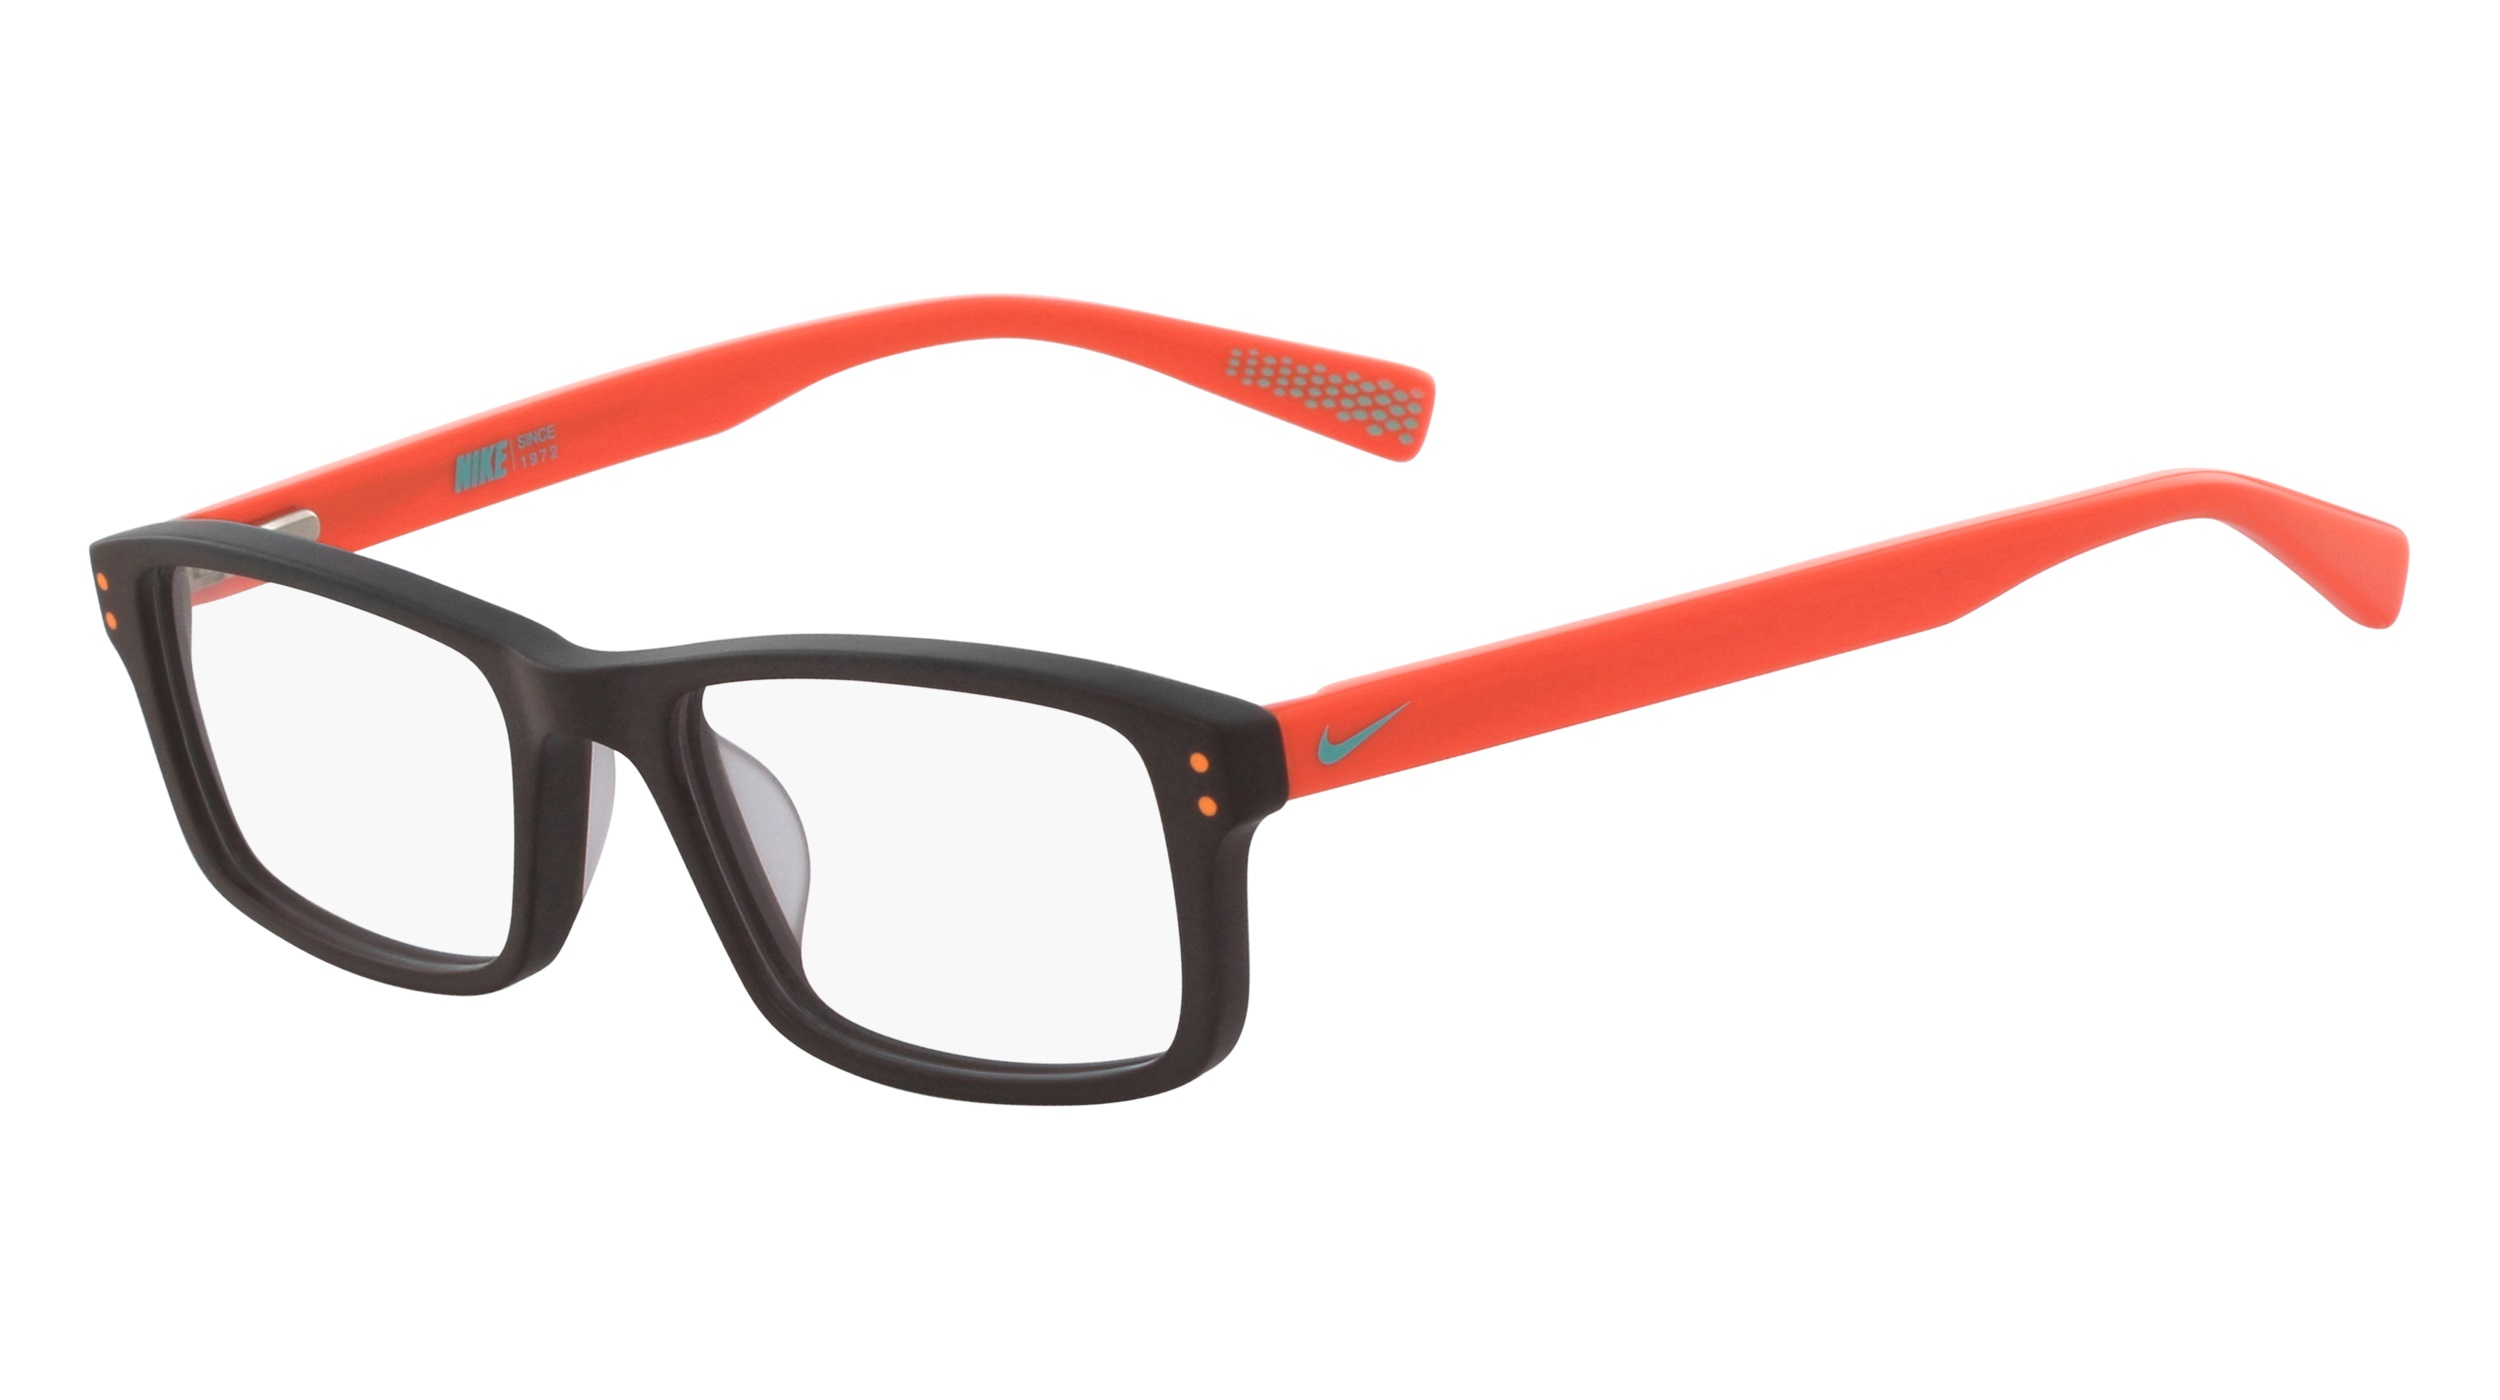 751fc6575f8 Nike 5537-210 Kids Eyeglasses Baroque Brown Total Orange Nike5537-210 -  Optiwow